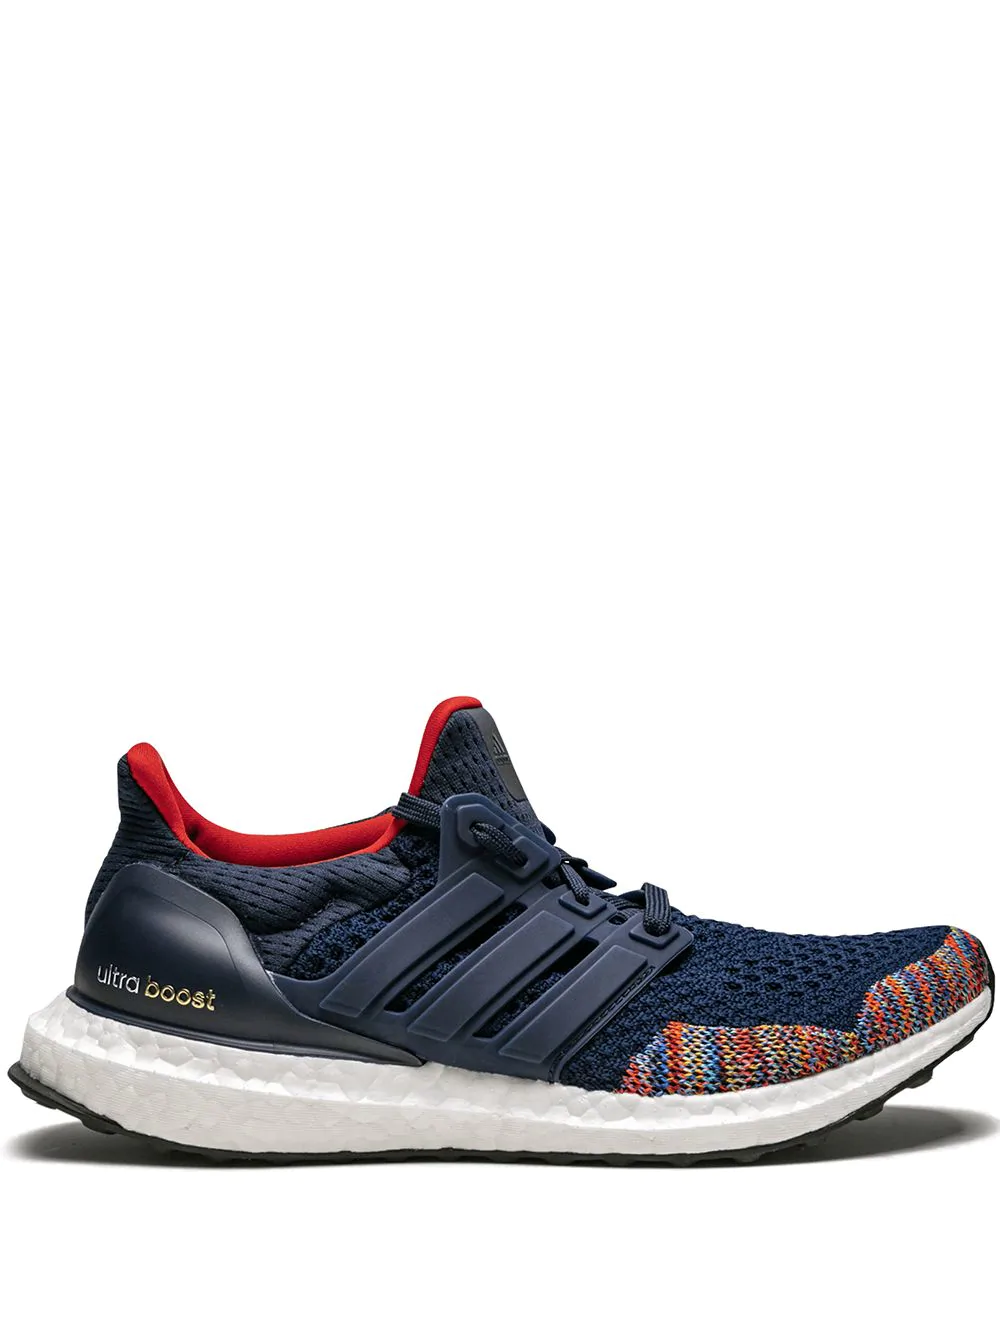 b2c45f0e76b Adidas Originals Adidas  Ultraboost Ltd  Sneakers - Blau In Blue. Farfetch